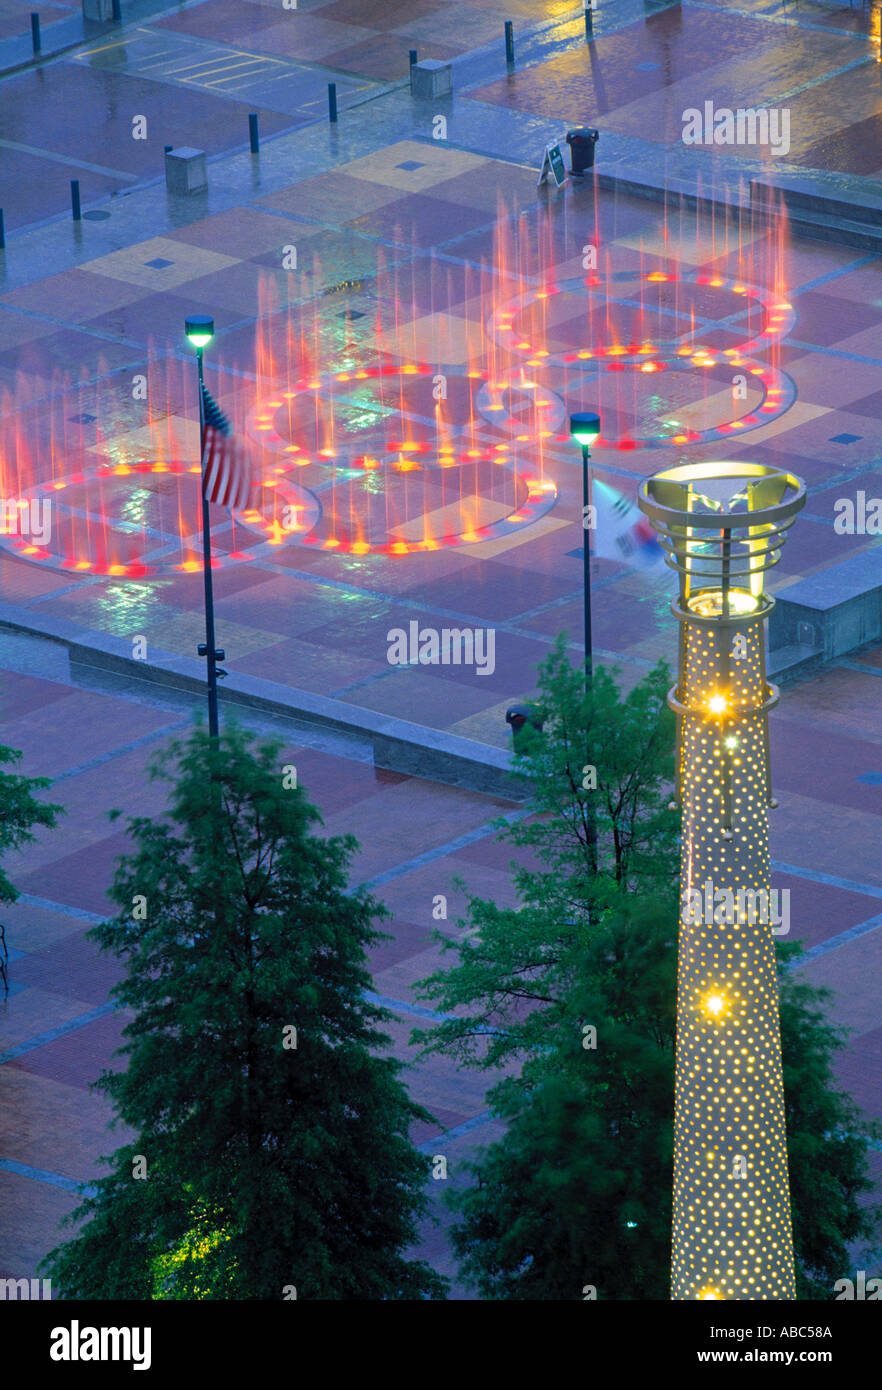 Centinial Olympic Park, Atlanta, Georgia, USA - Stock Image